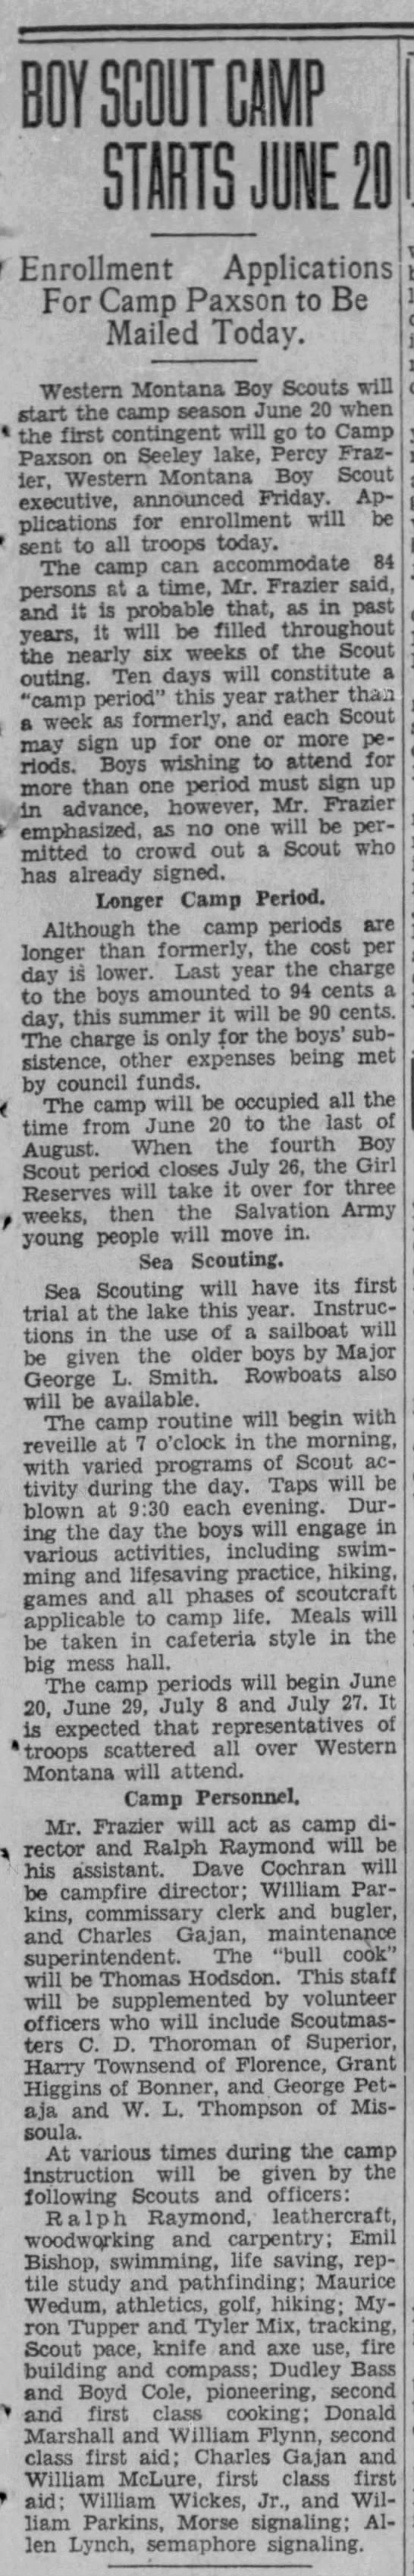 1932-04-02 Camp Paxson Scout activities - Newspapers com